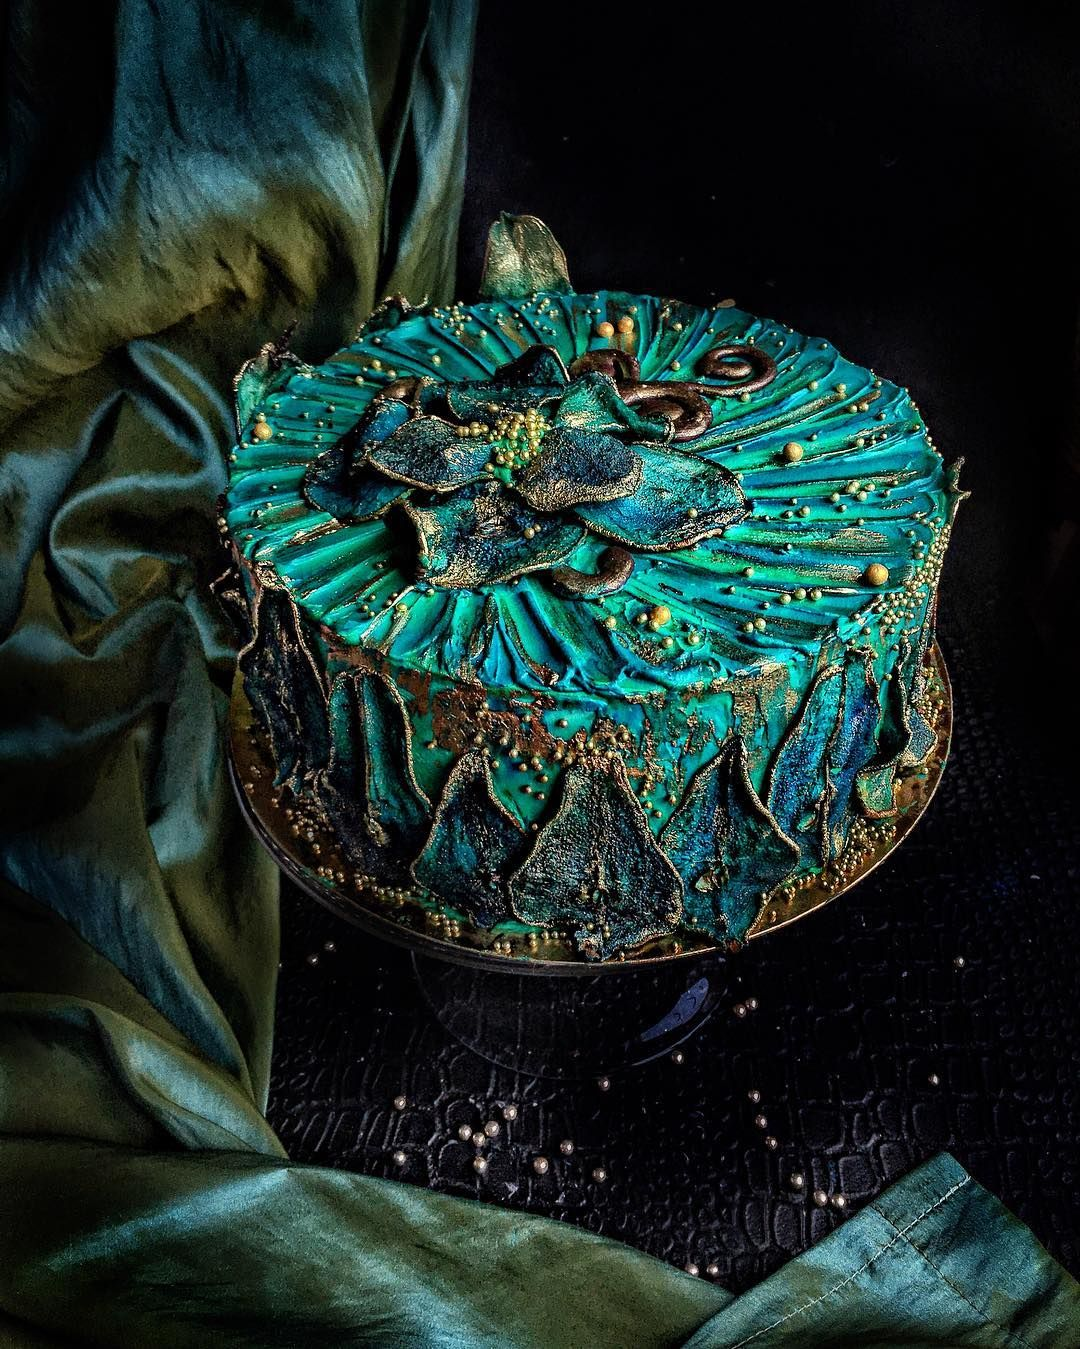 Pin by Mys Tharwat on Cake decorating company (With images ...